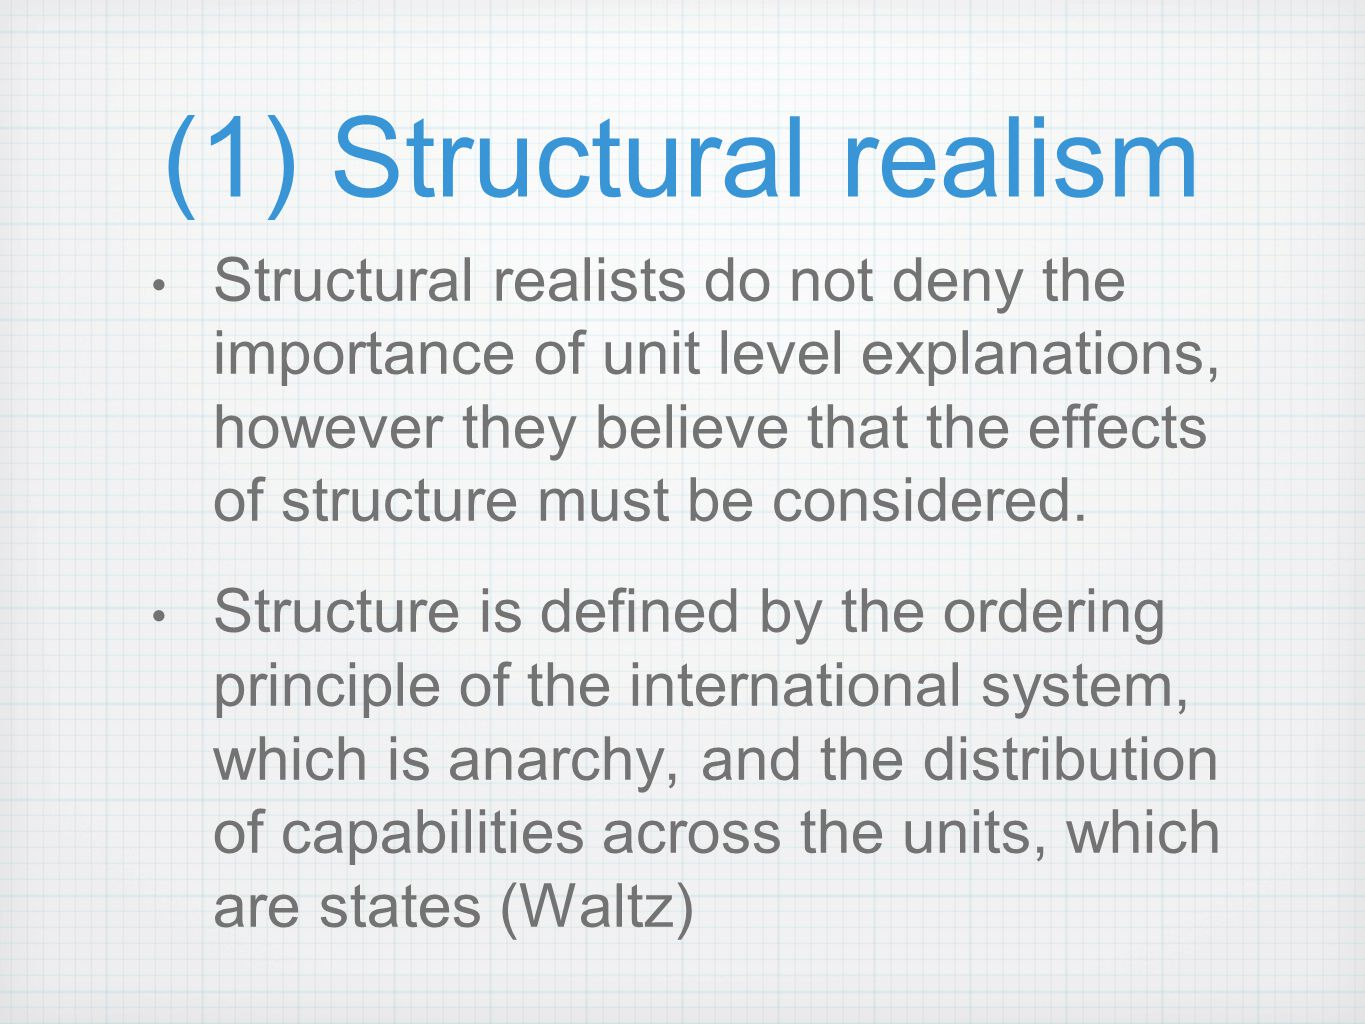 (1) Structural realism